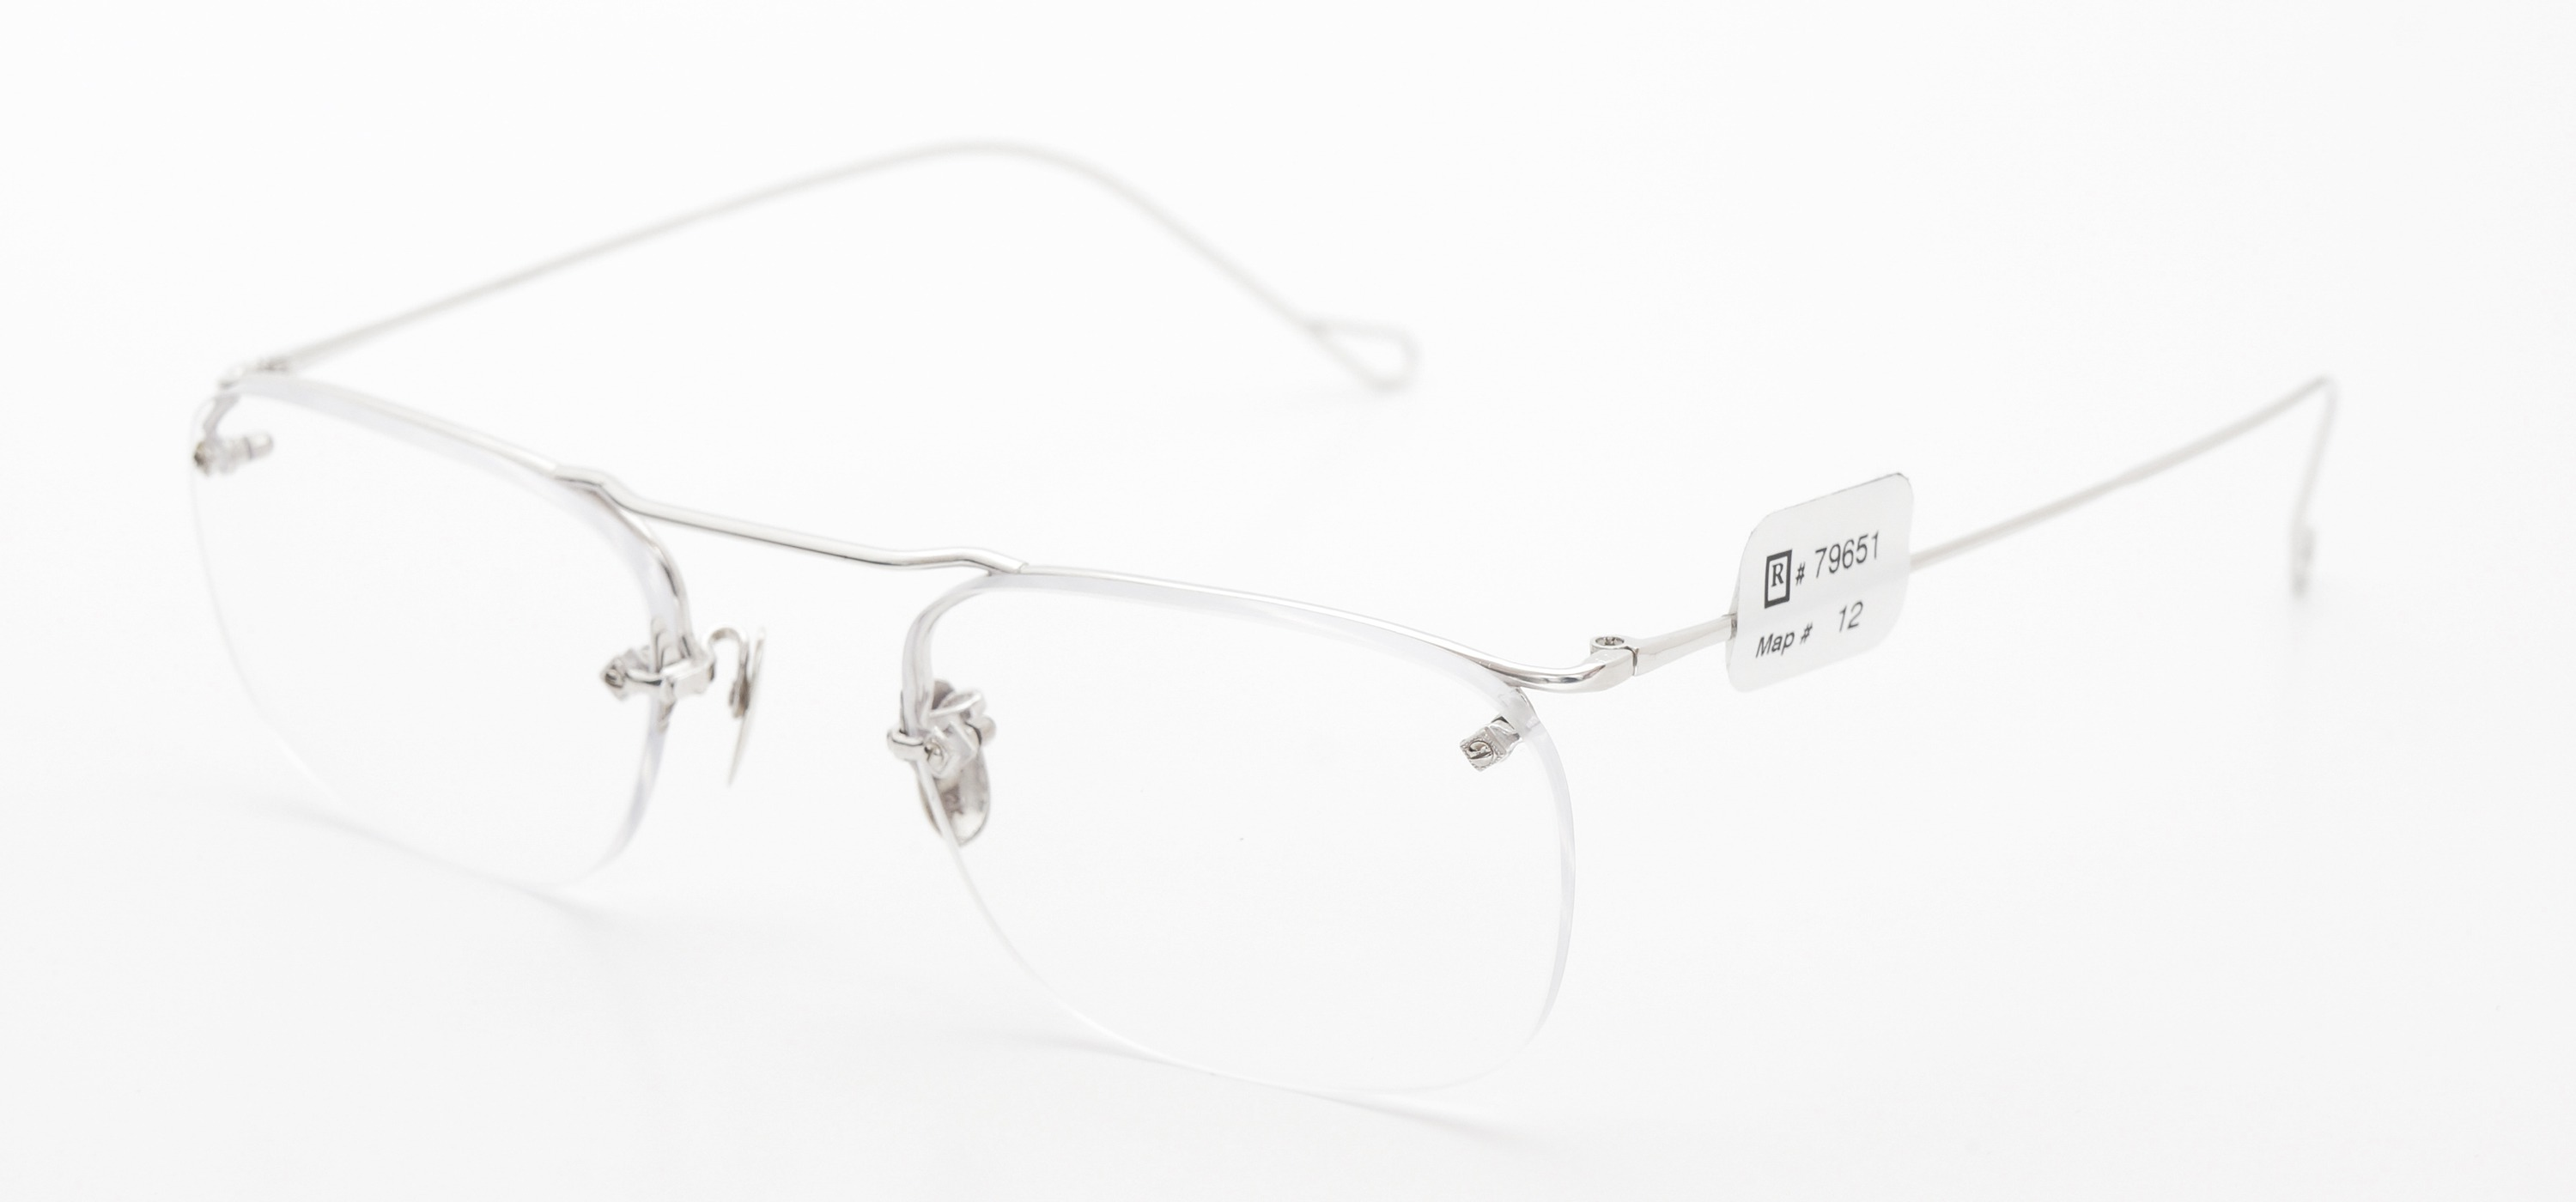 The Spectacle メガネ 1940 American Optical Everjax Bar Sterling WG 12kPads 49-21 イメージ3